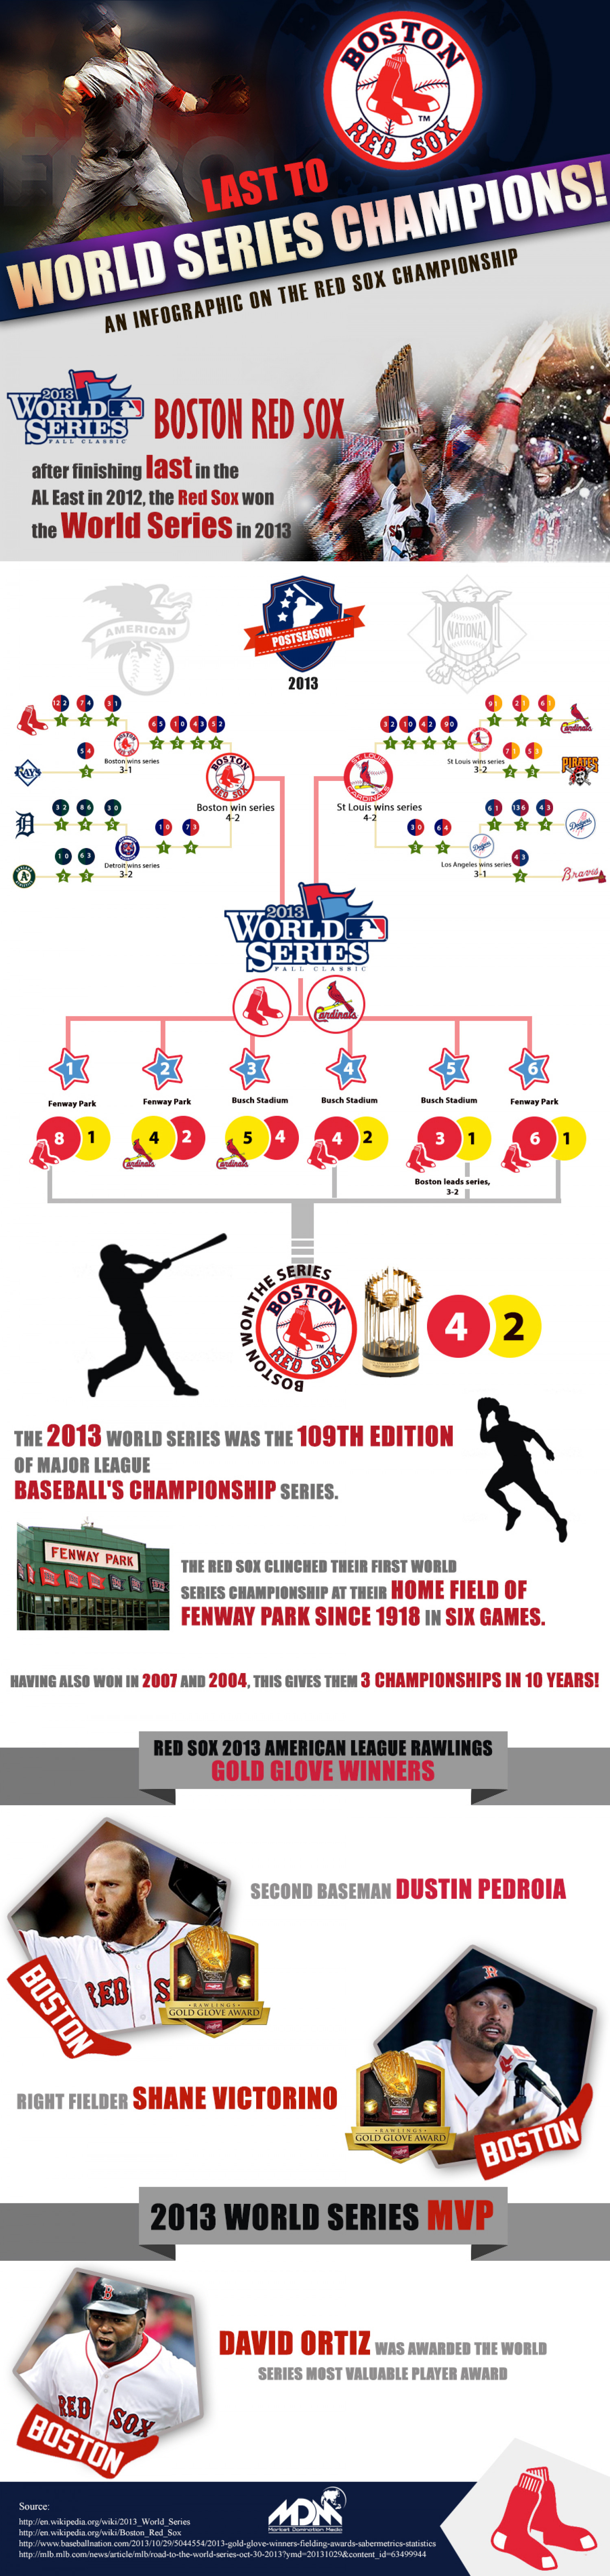 Red Sox 2013 WS Champions Infographic